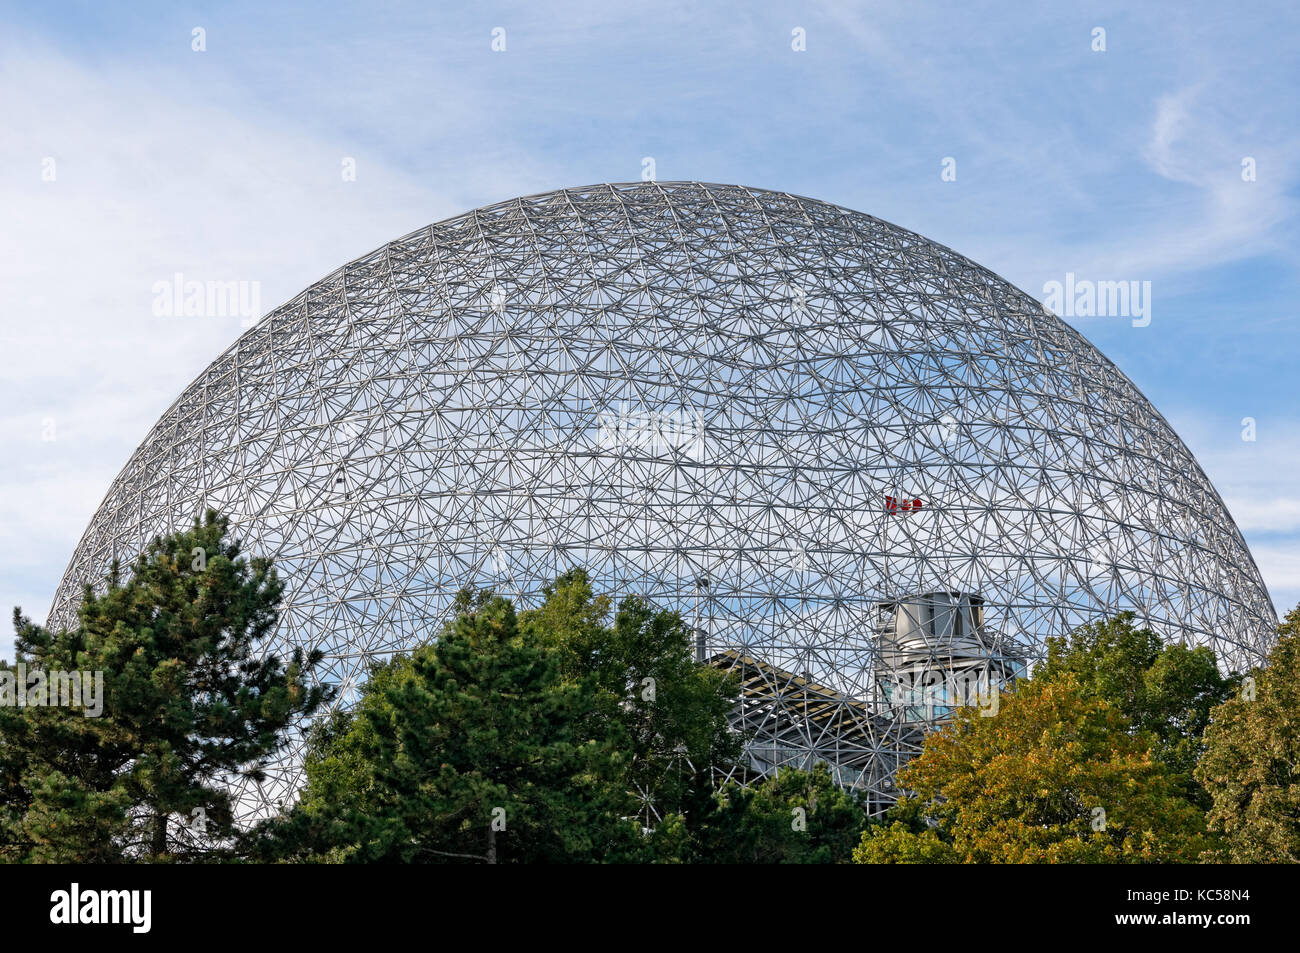 Montreal Biosphere Environment Museum geodesic dome in Parc Jean Drapeau, Ile Sainte-Helene, Montreal, Quebec, Canada - Stock Image